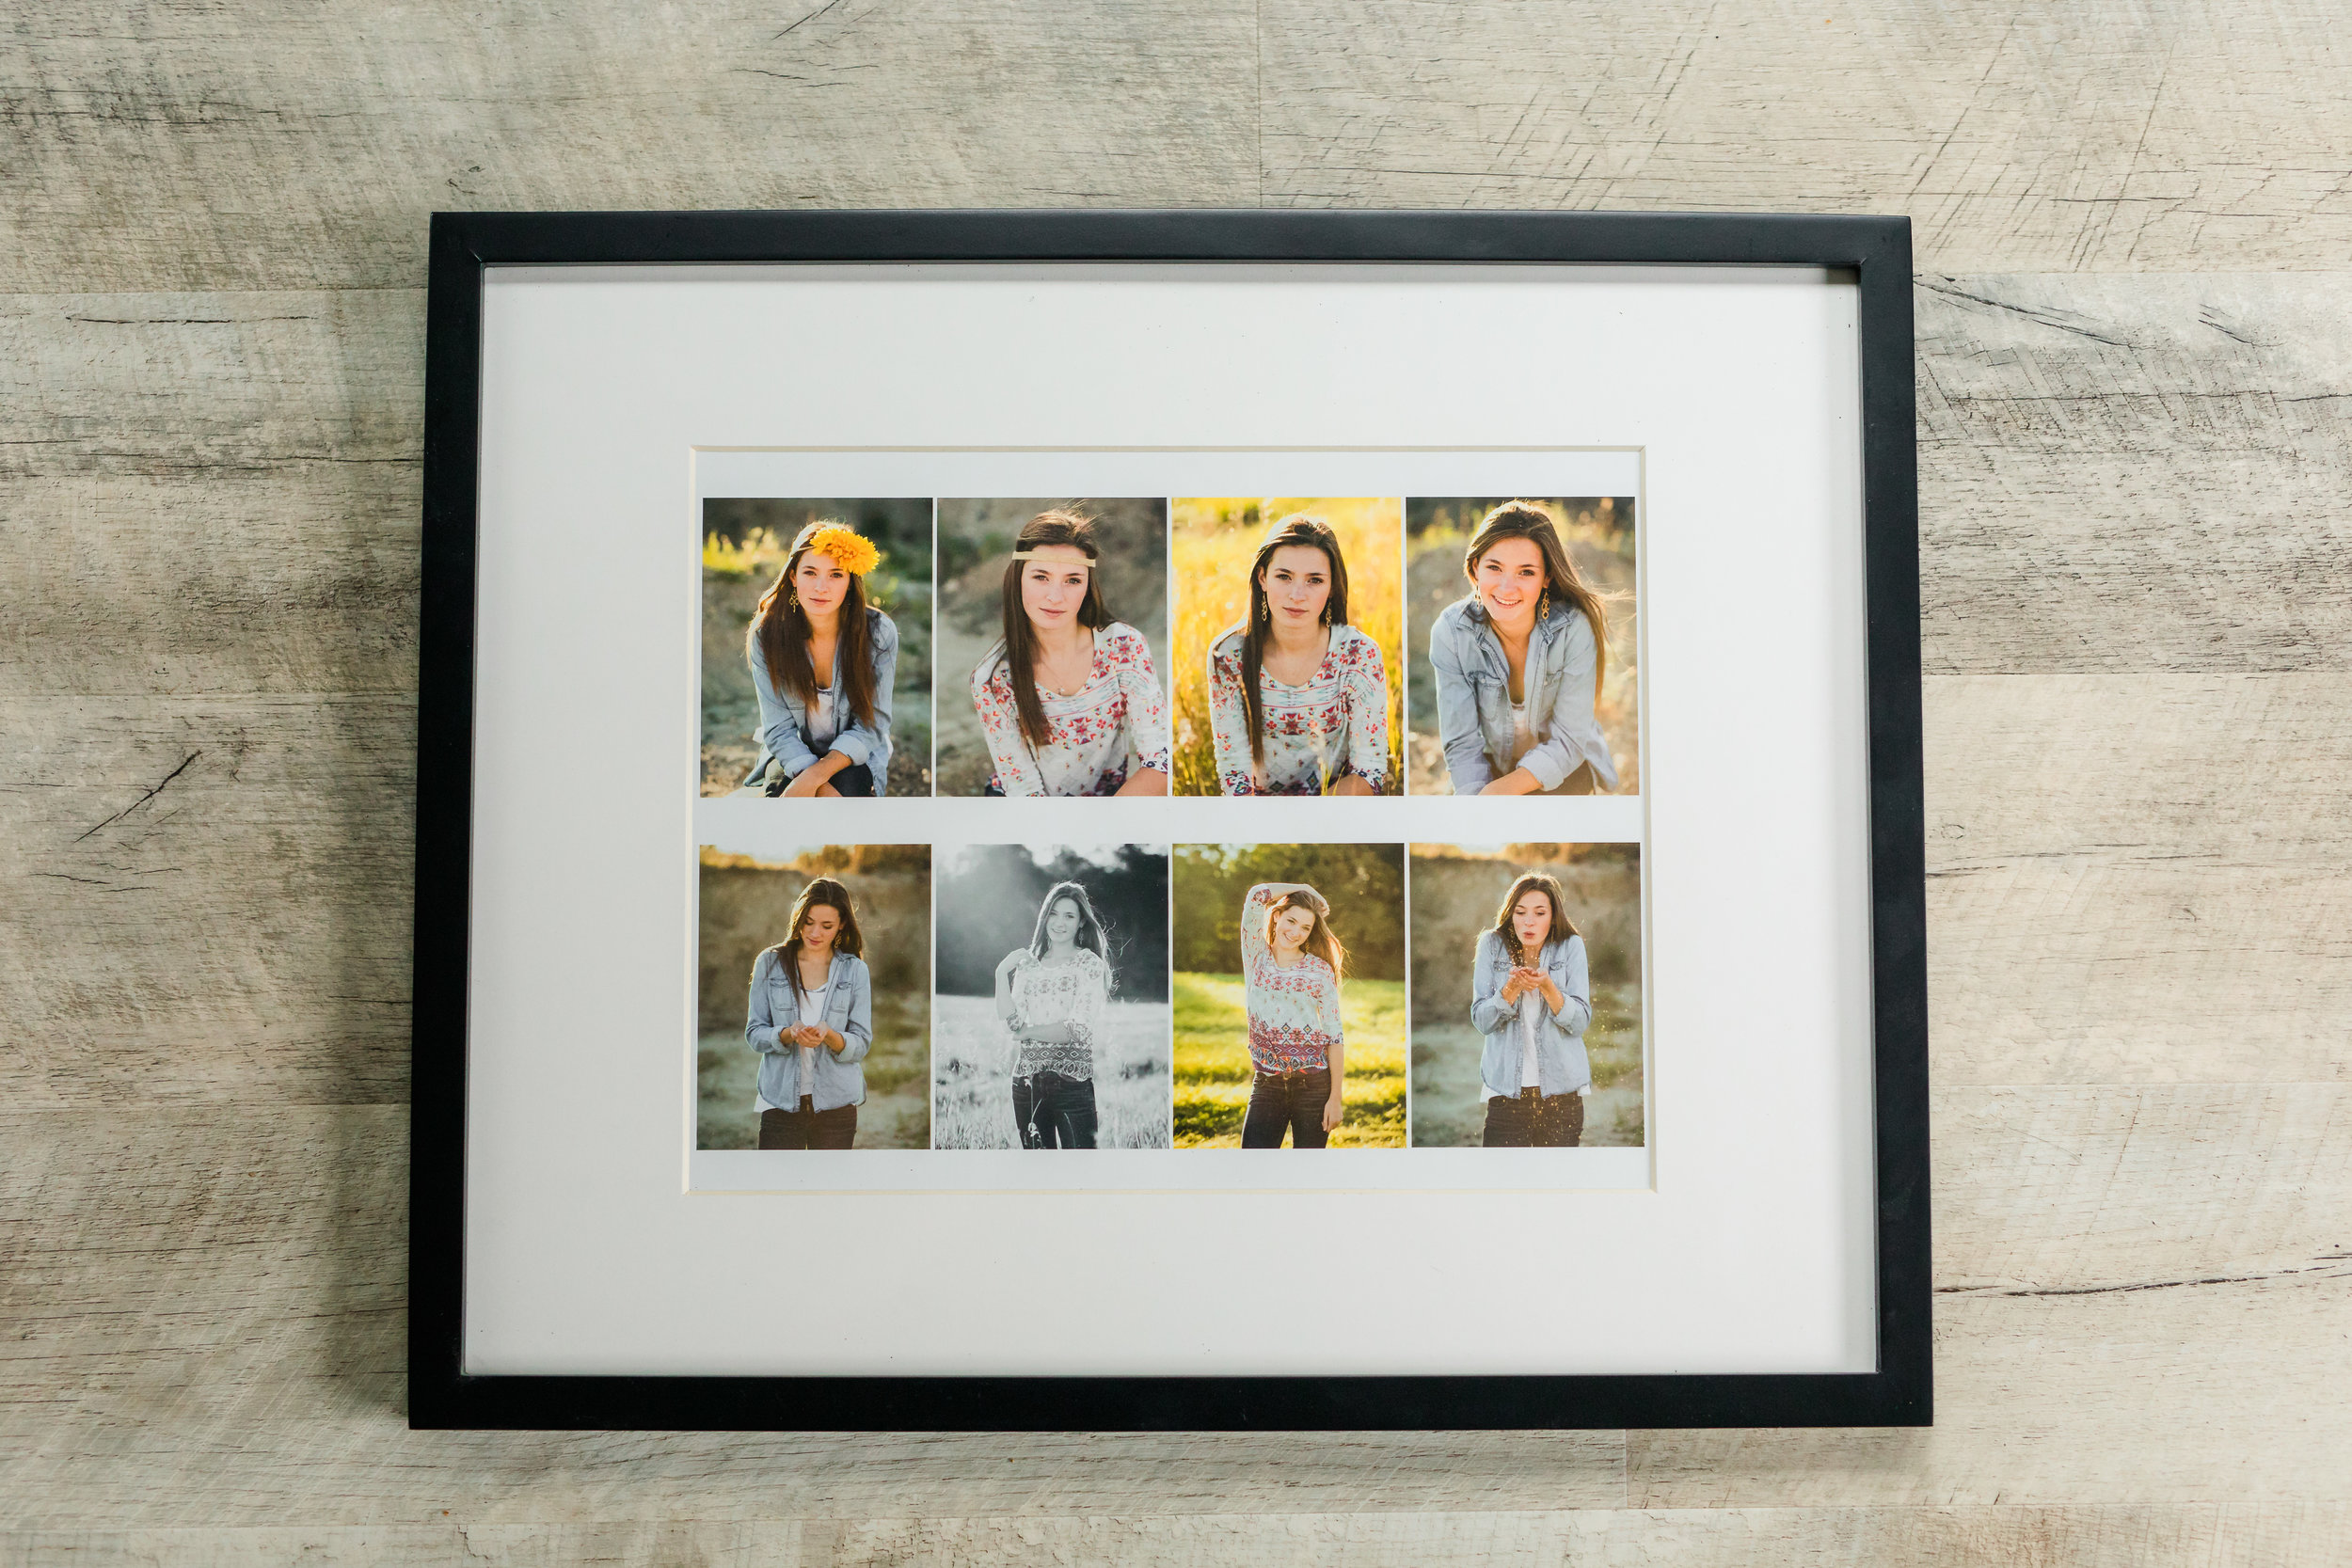 Collage Prints - 16x20 Print$9011x14 Print$40*frame not included, the frame photographed is from Target